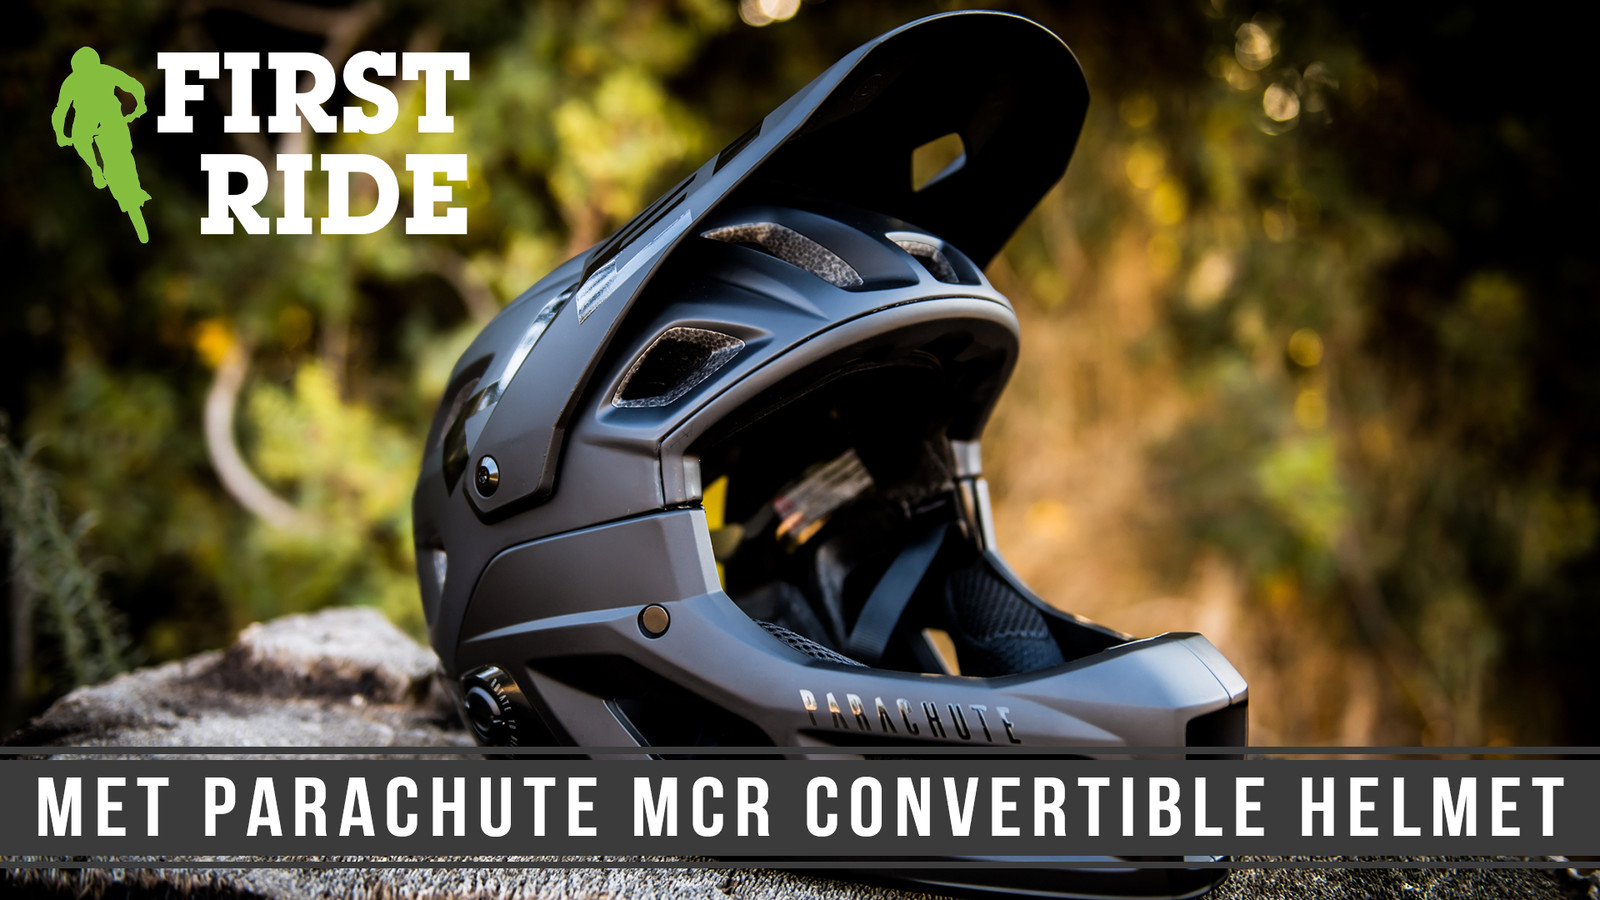 First Ride: MET Parachute MCR Convertible Full Face Helmet